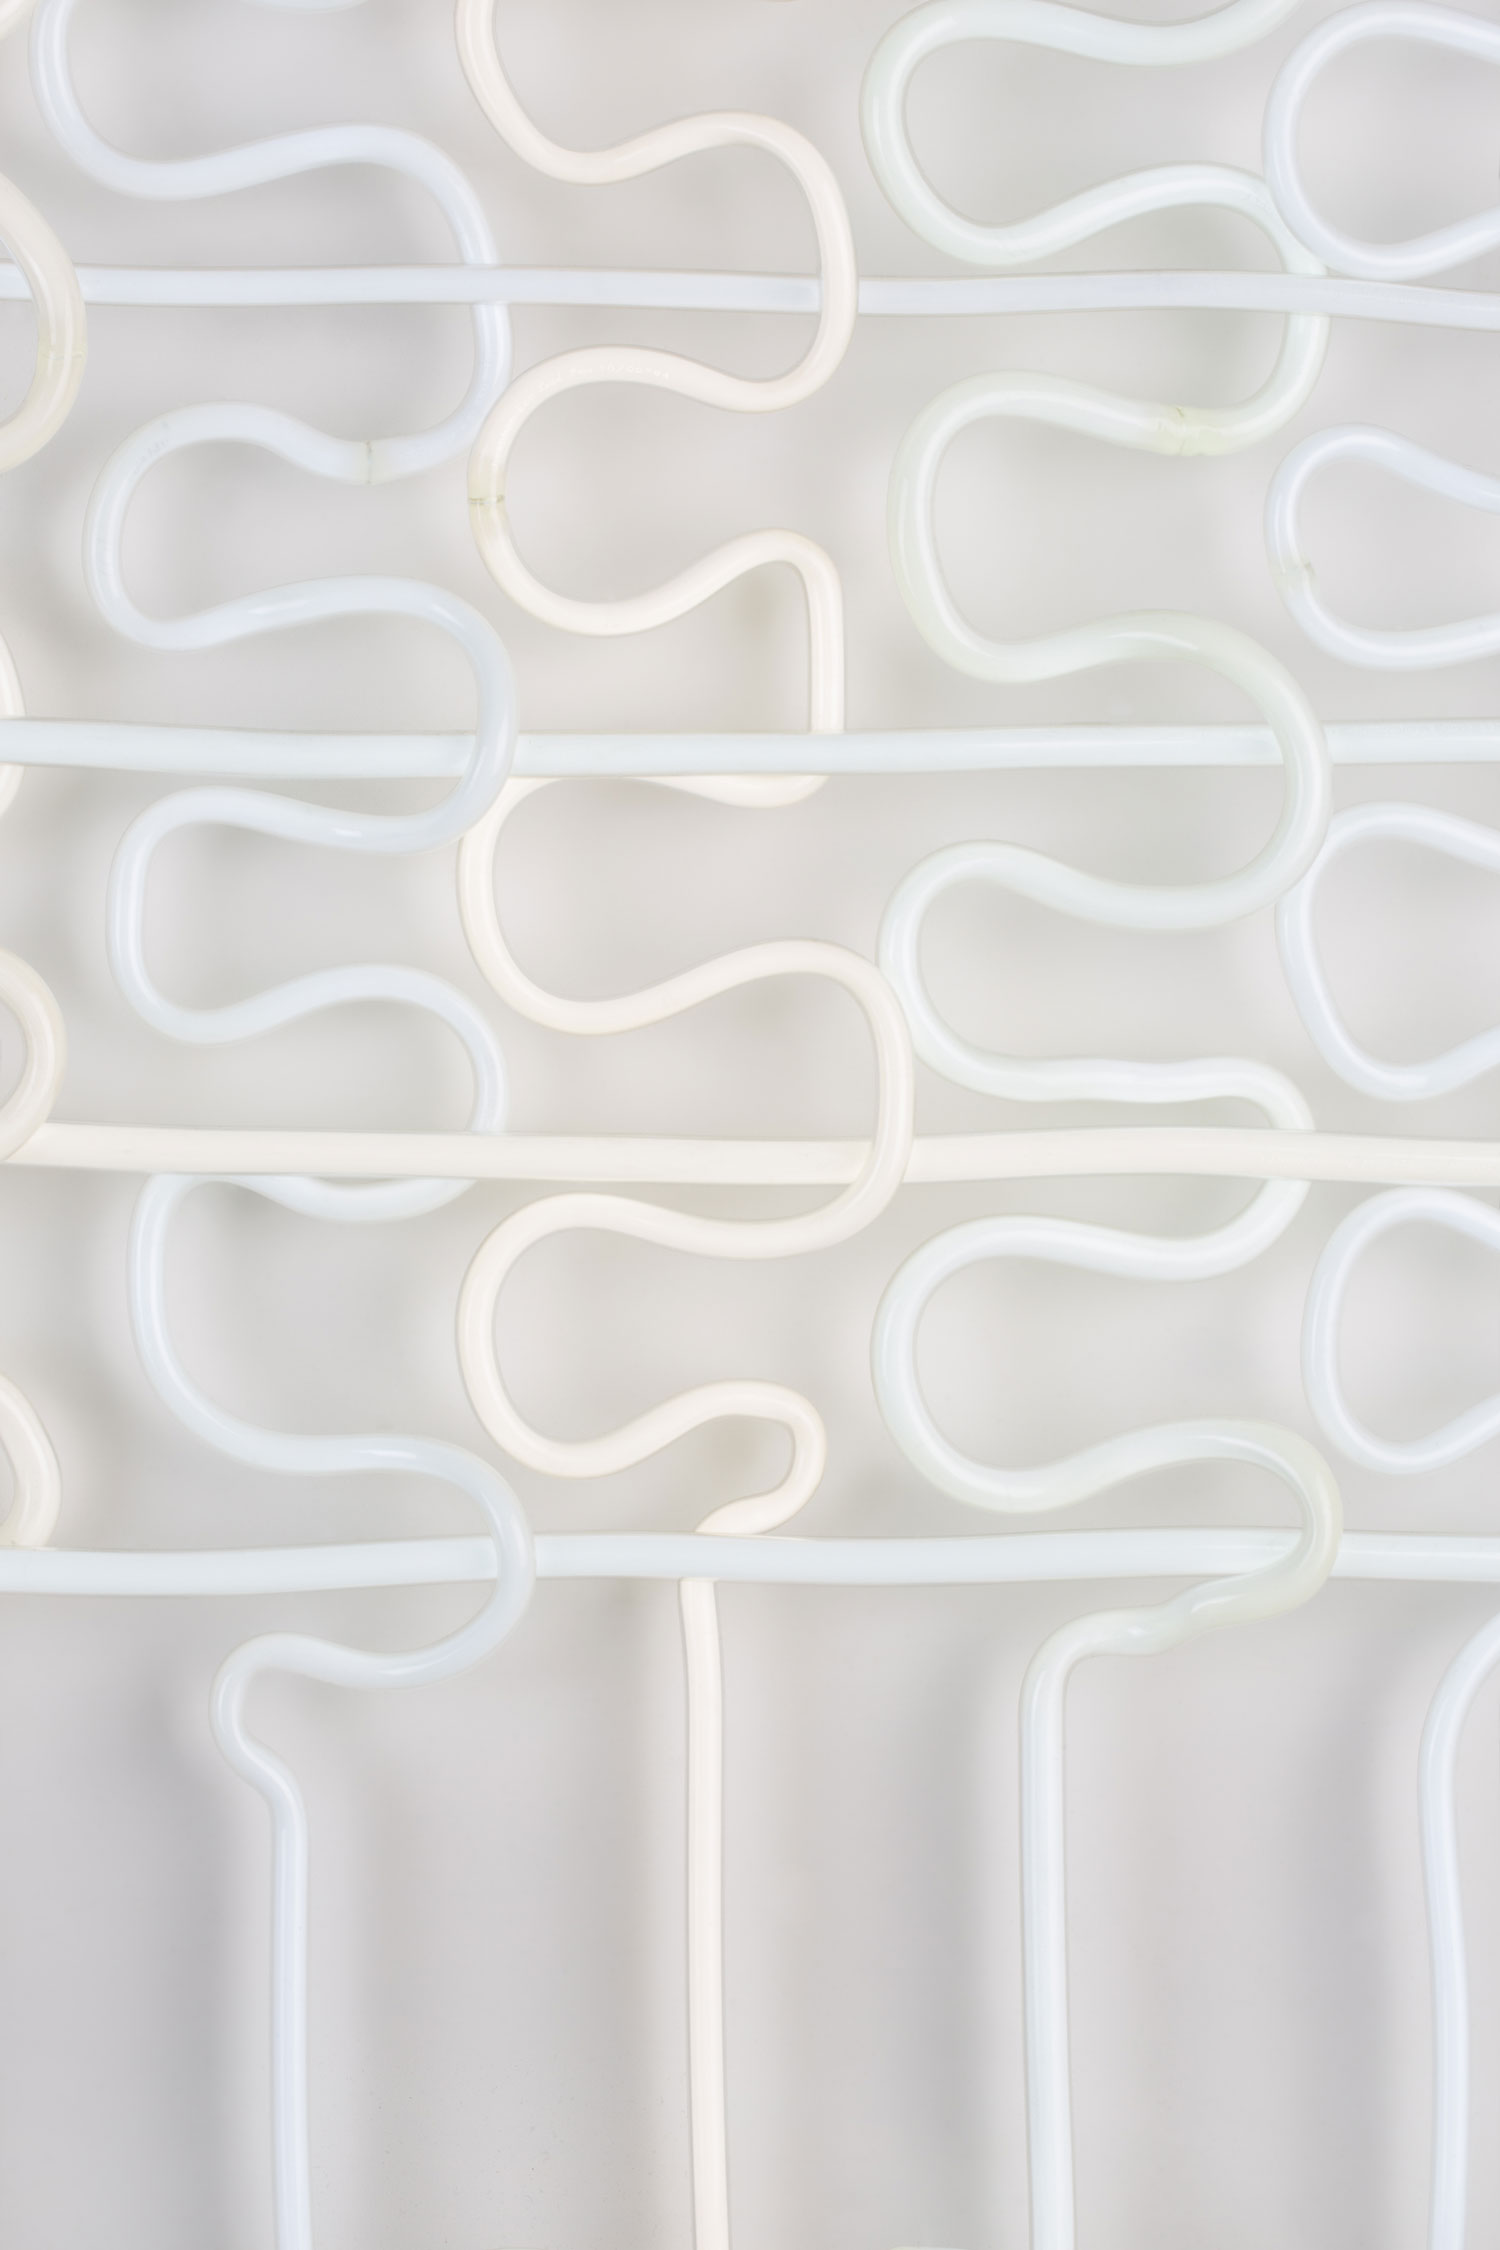 Entangled Light by Mary Wallis in collaboration with Suzanne Tick | Yellowtrace